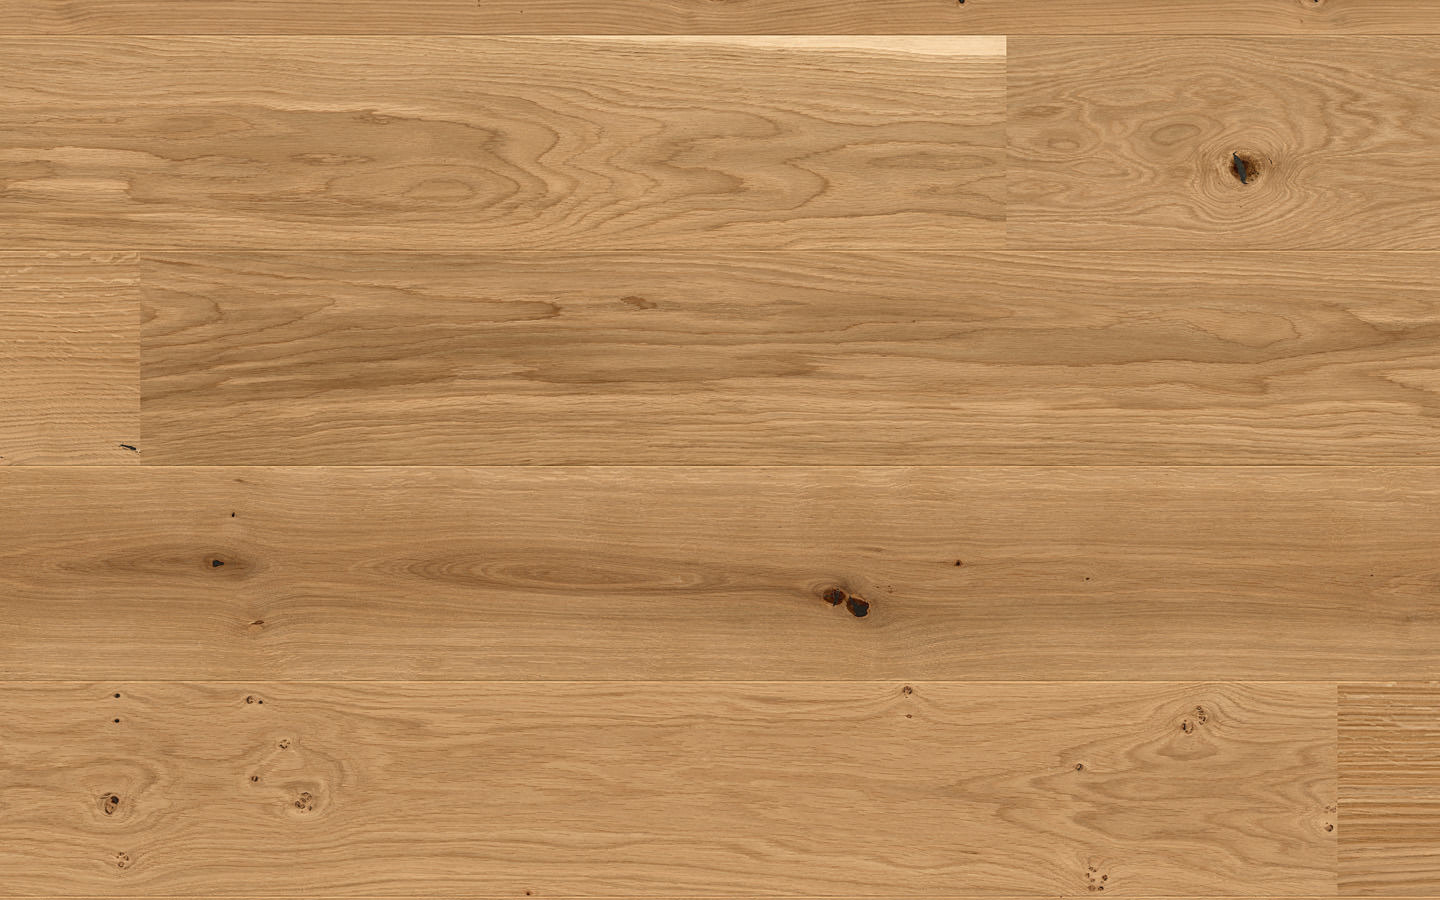 Villa by adler 35 Rustico - Oak Natur rustico wire brushed natural oiled - 14 x 186 x 1800/2000 mm